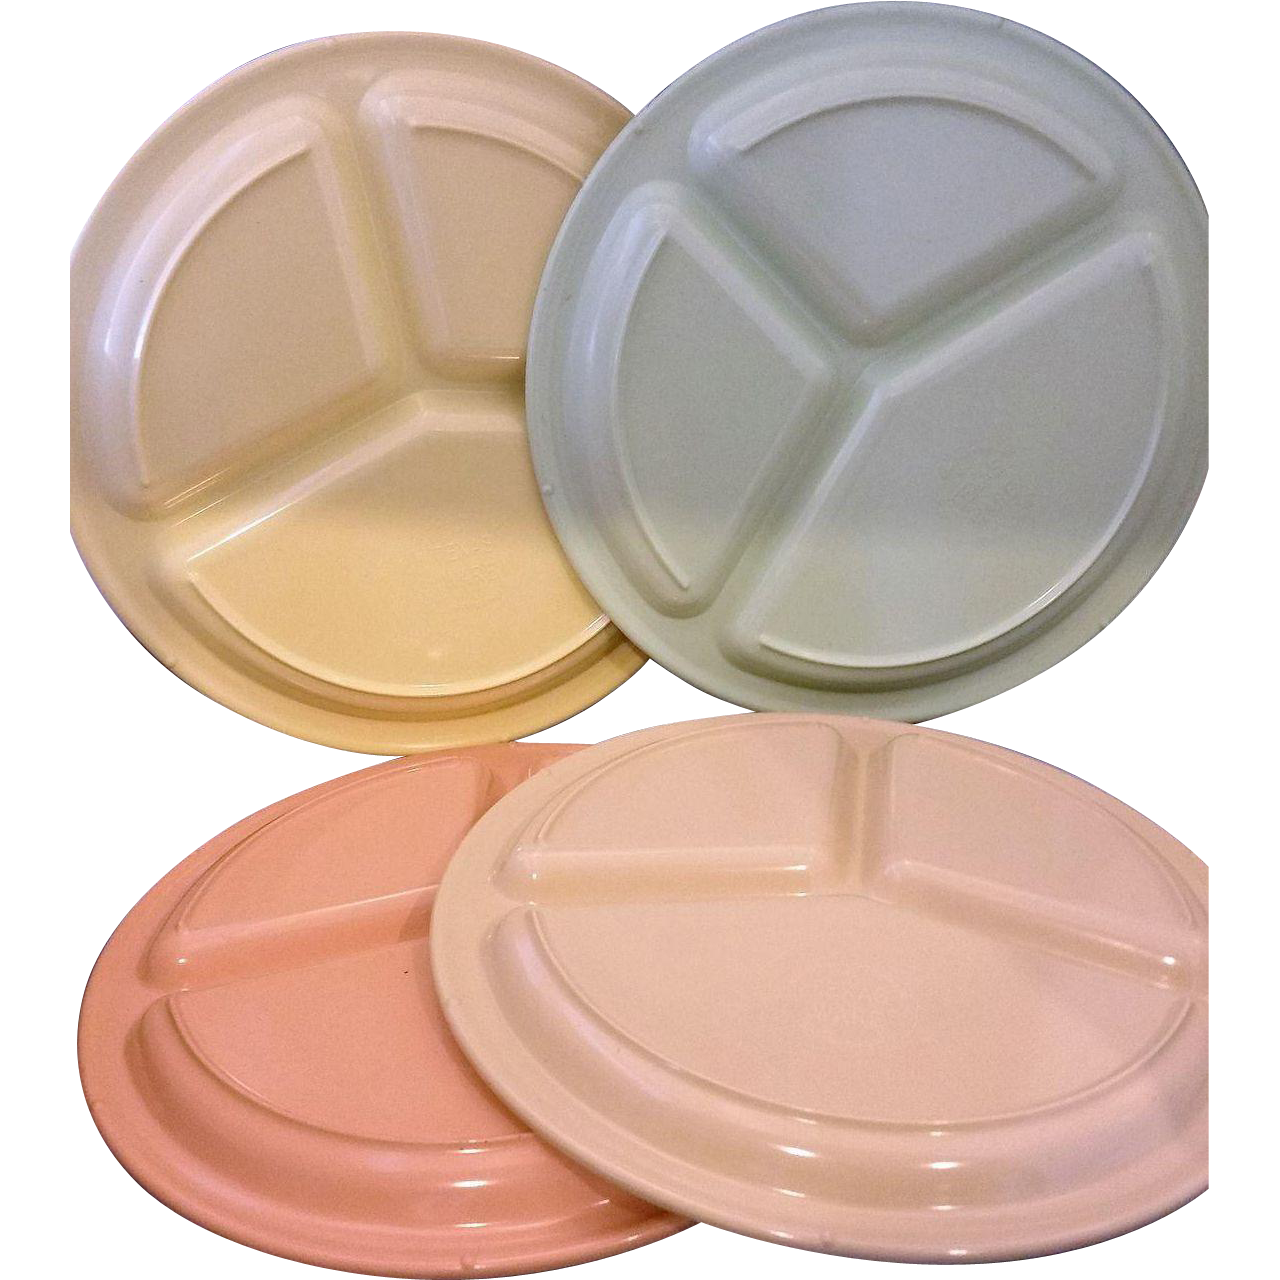 Texas Ware Divided Grill Cafeteria Plates Set of 4 Vintage Melmac 10 IN 4 Colors